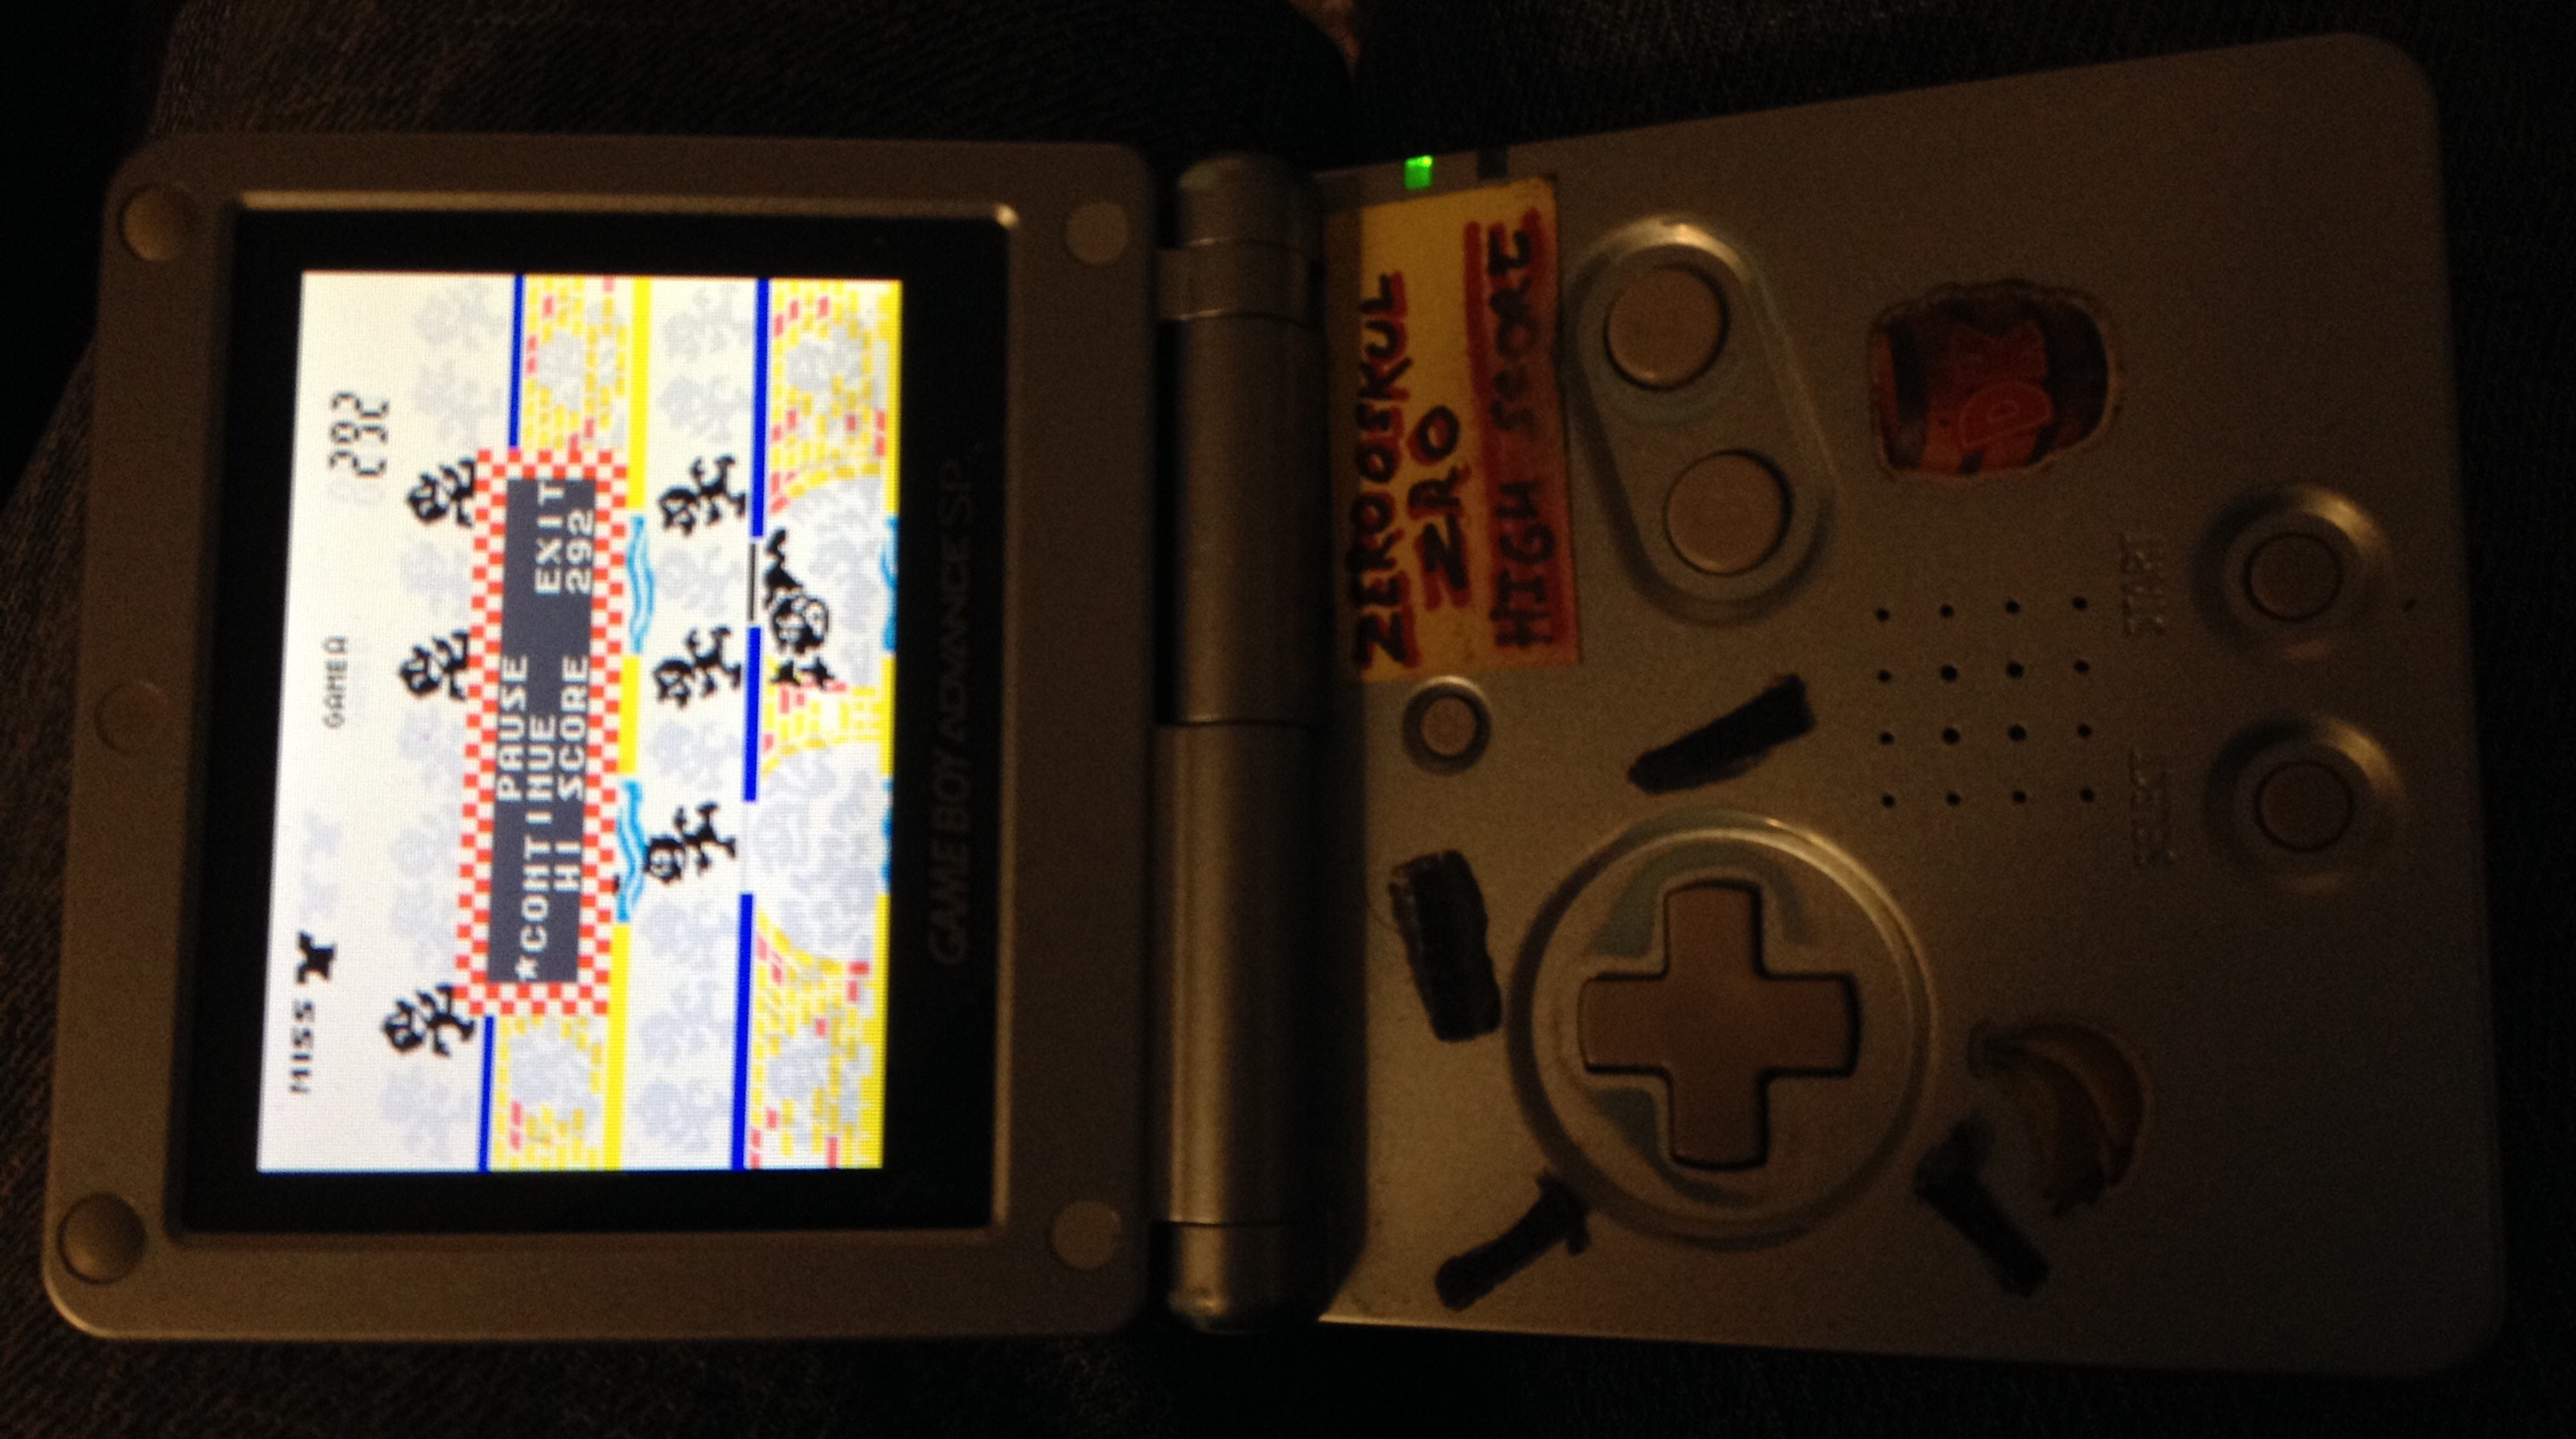 zerooskul: Game & Watch Gallery 4: Manhole [Classic: Easy] (GBA) 298 points on 2019-11-24 17:37:22